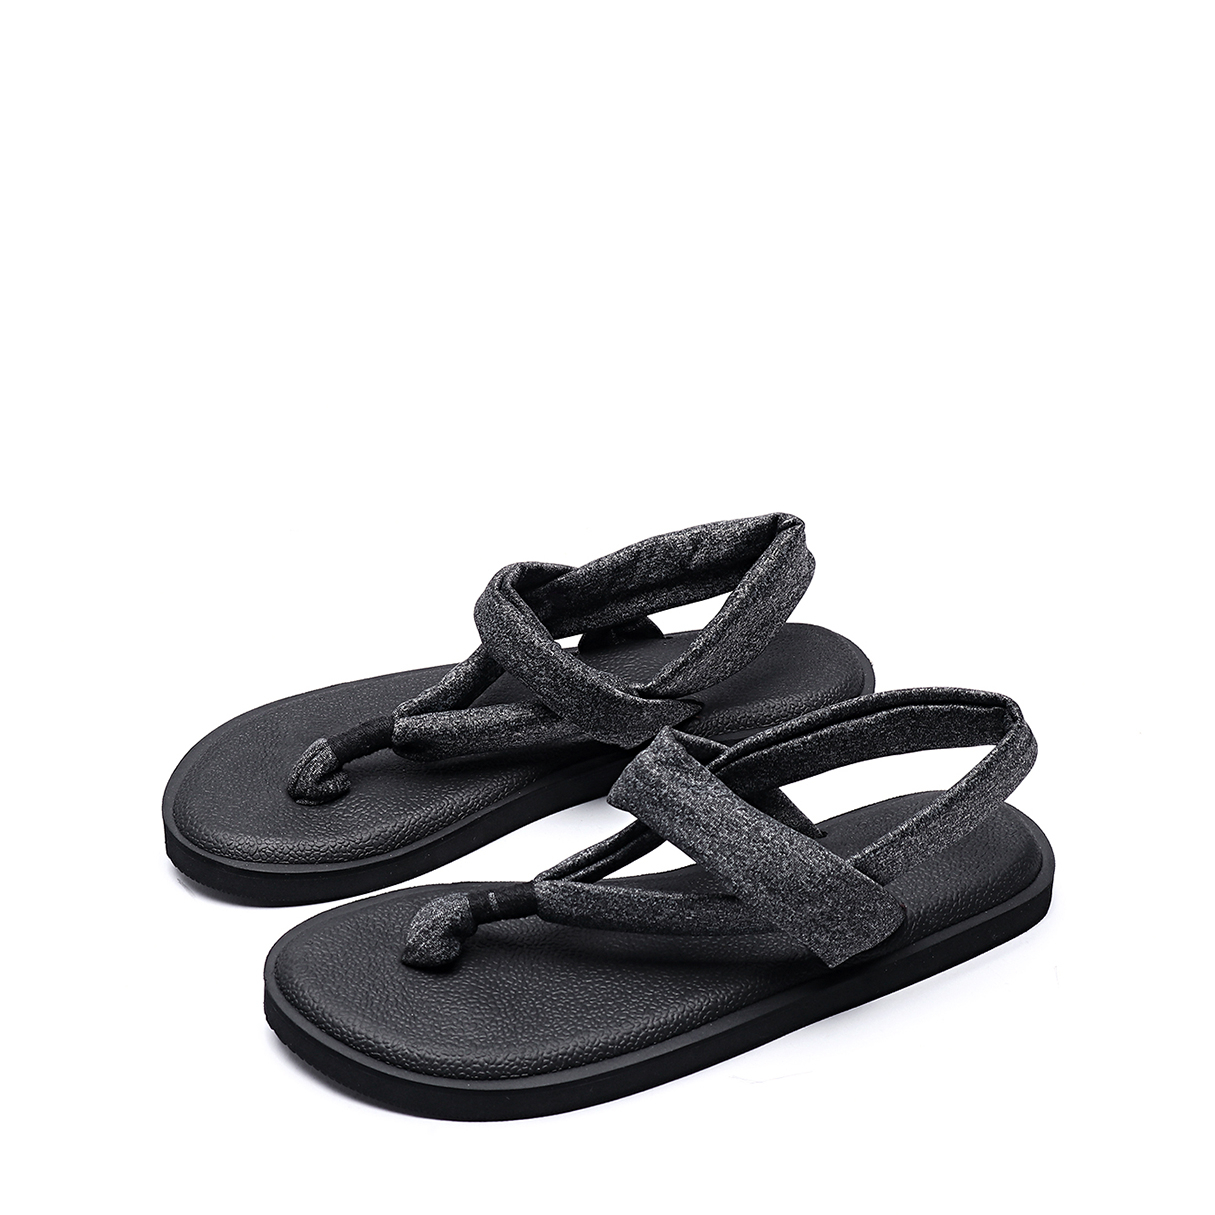 Casual Solid Color Flat Thong Sandals in Black